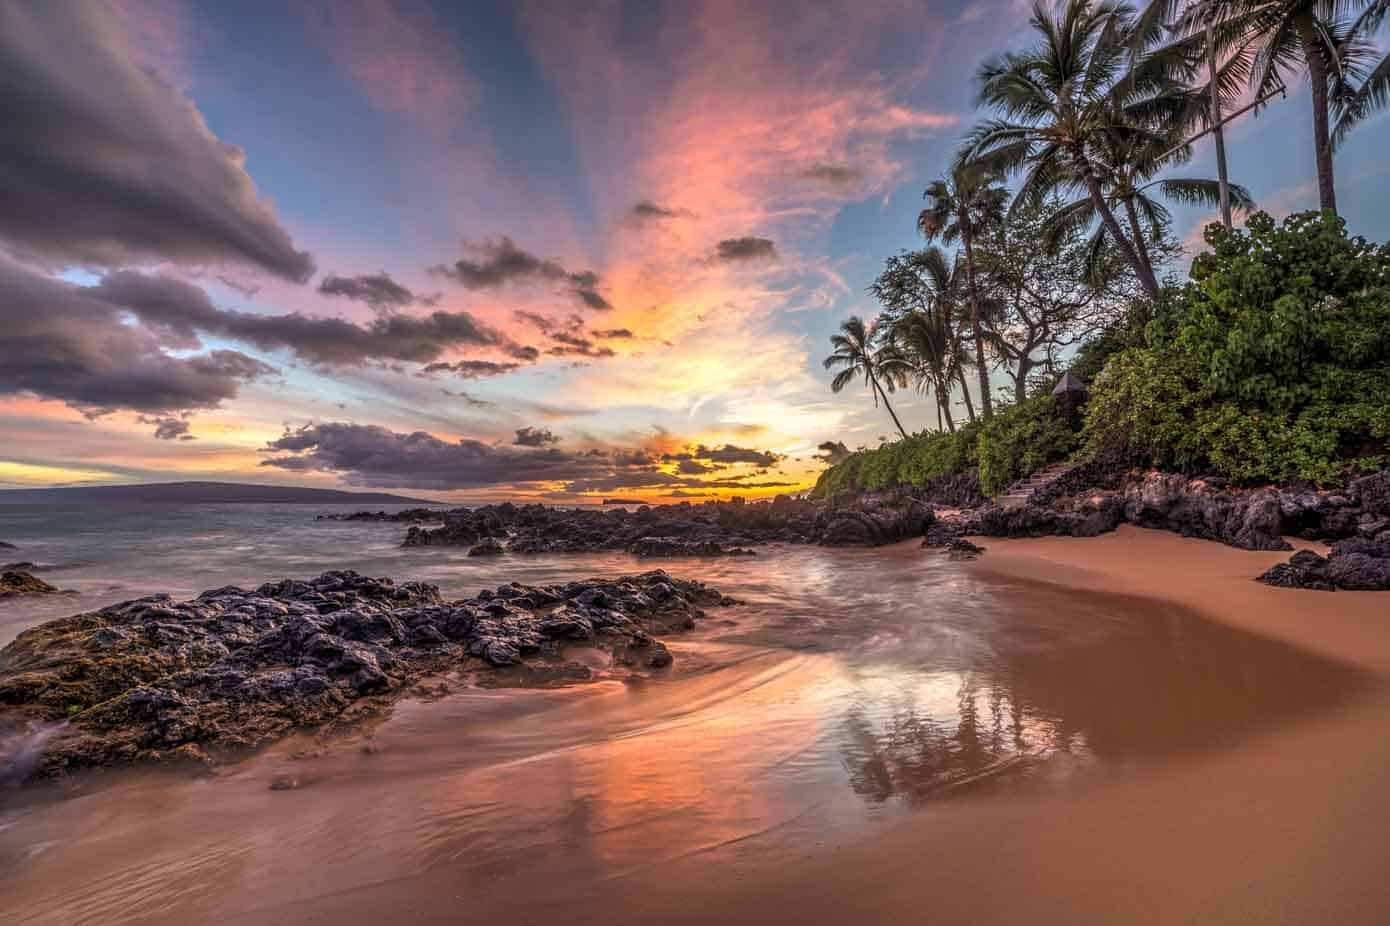 Gorgeous beach cove lined with palm trees during sunset in Hawaii.